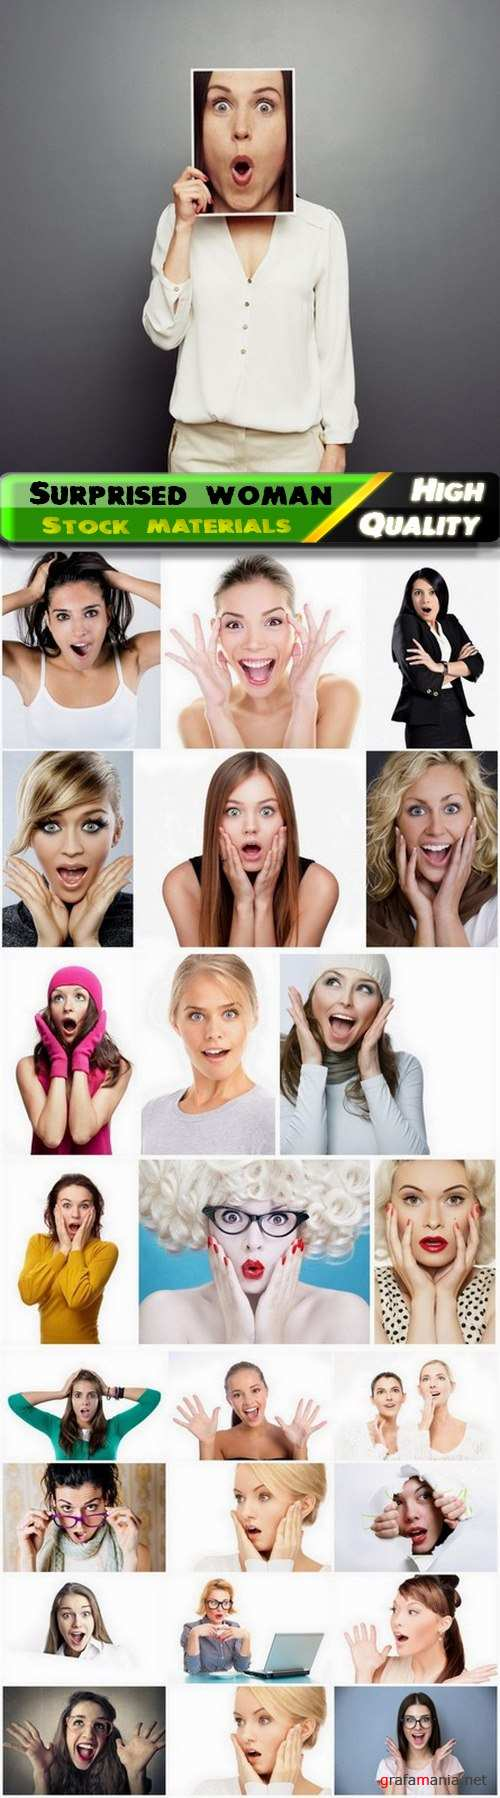 Surprised woman and girl with an open mouth  - 25 HQ Jpg